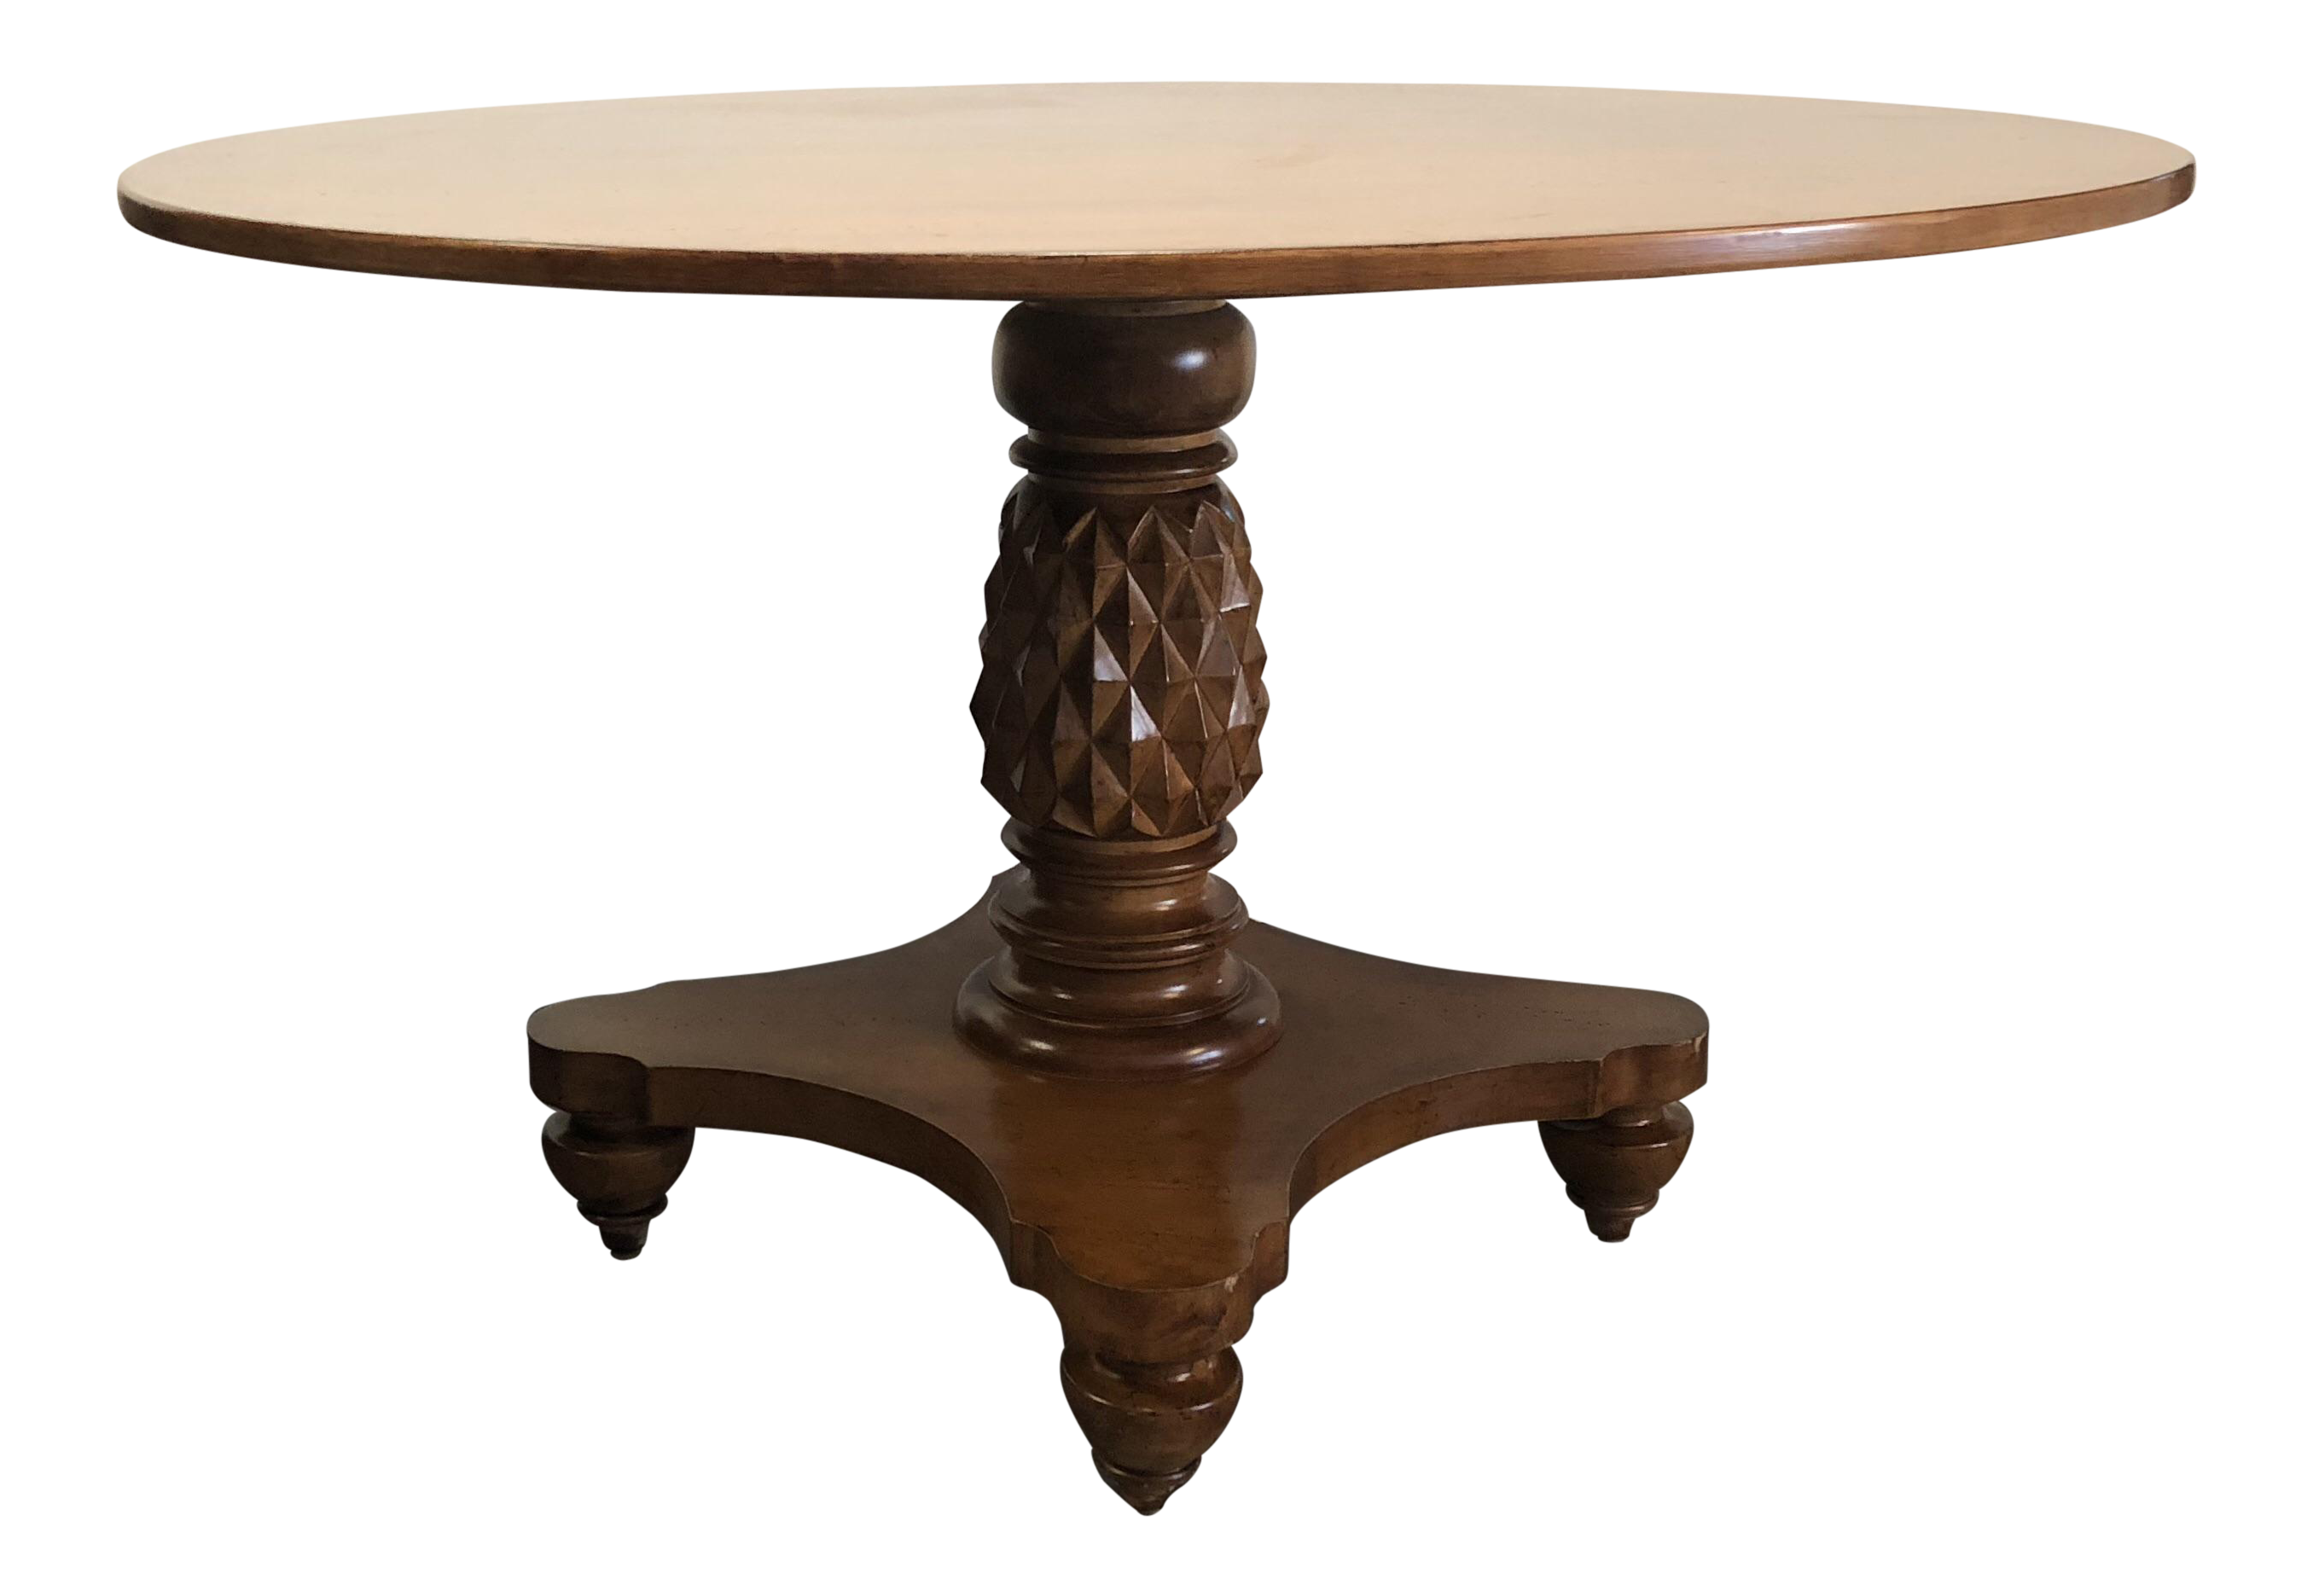 Pedestal drawing antique table. Round pineapple base wood